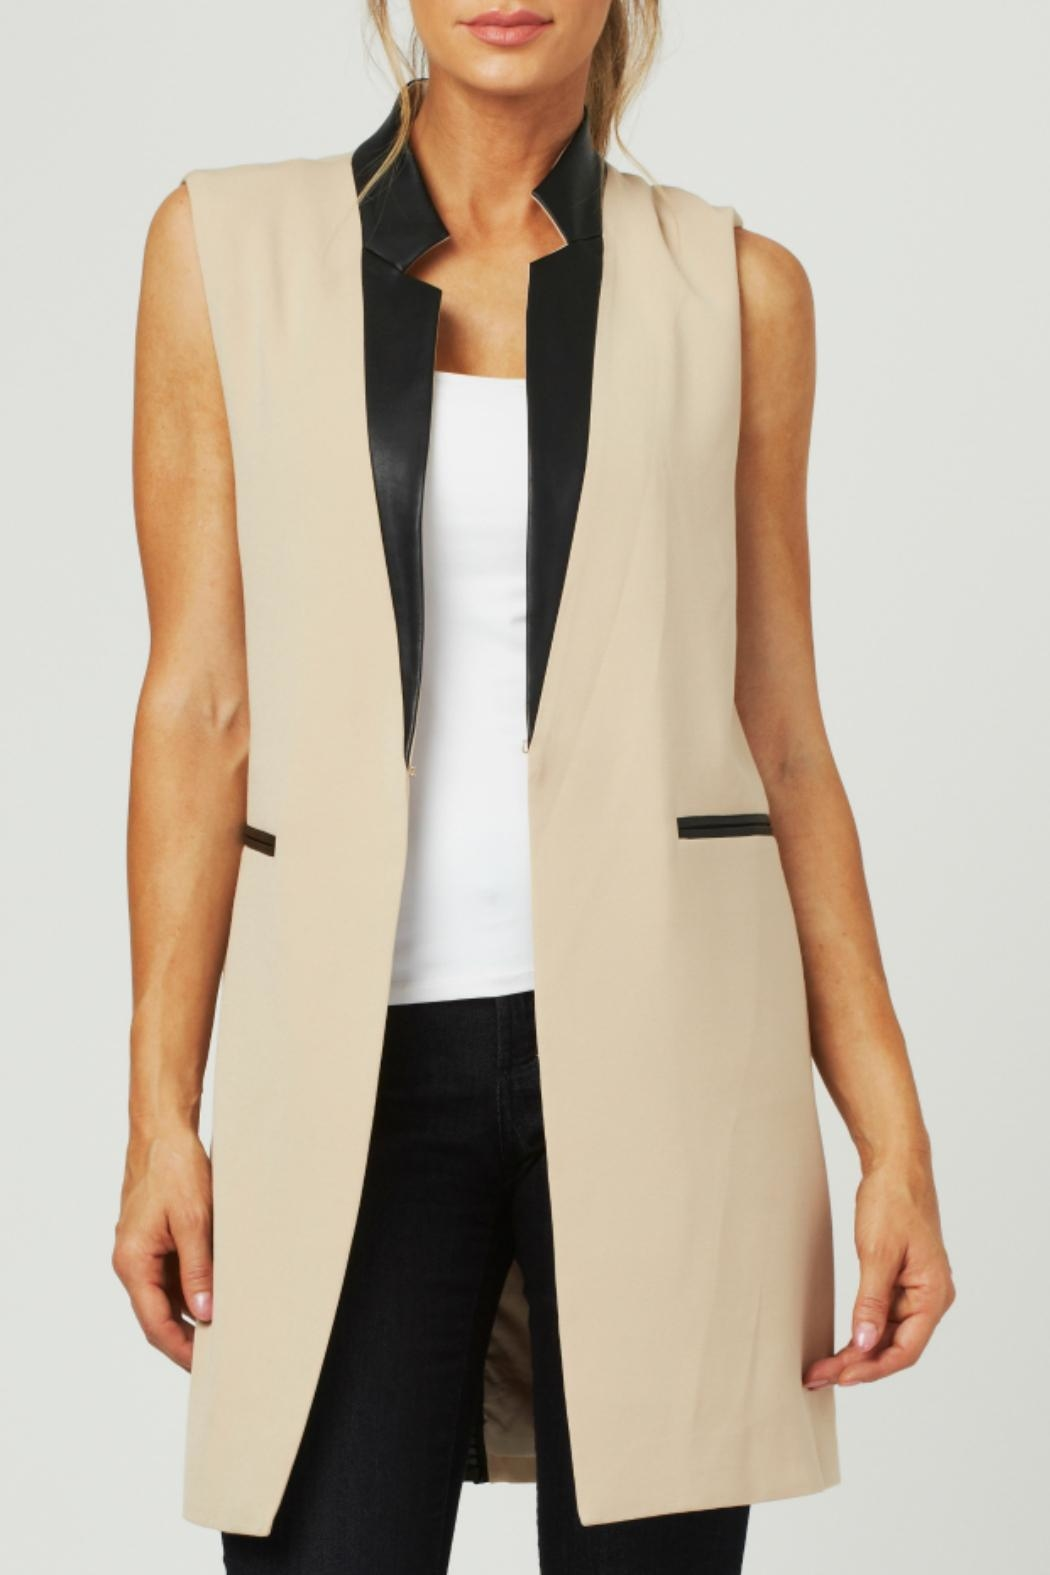 Luii Leather Trimmed Vest - Main Image